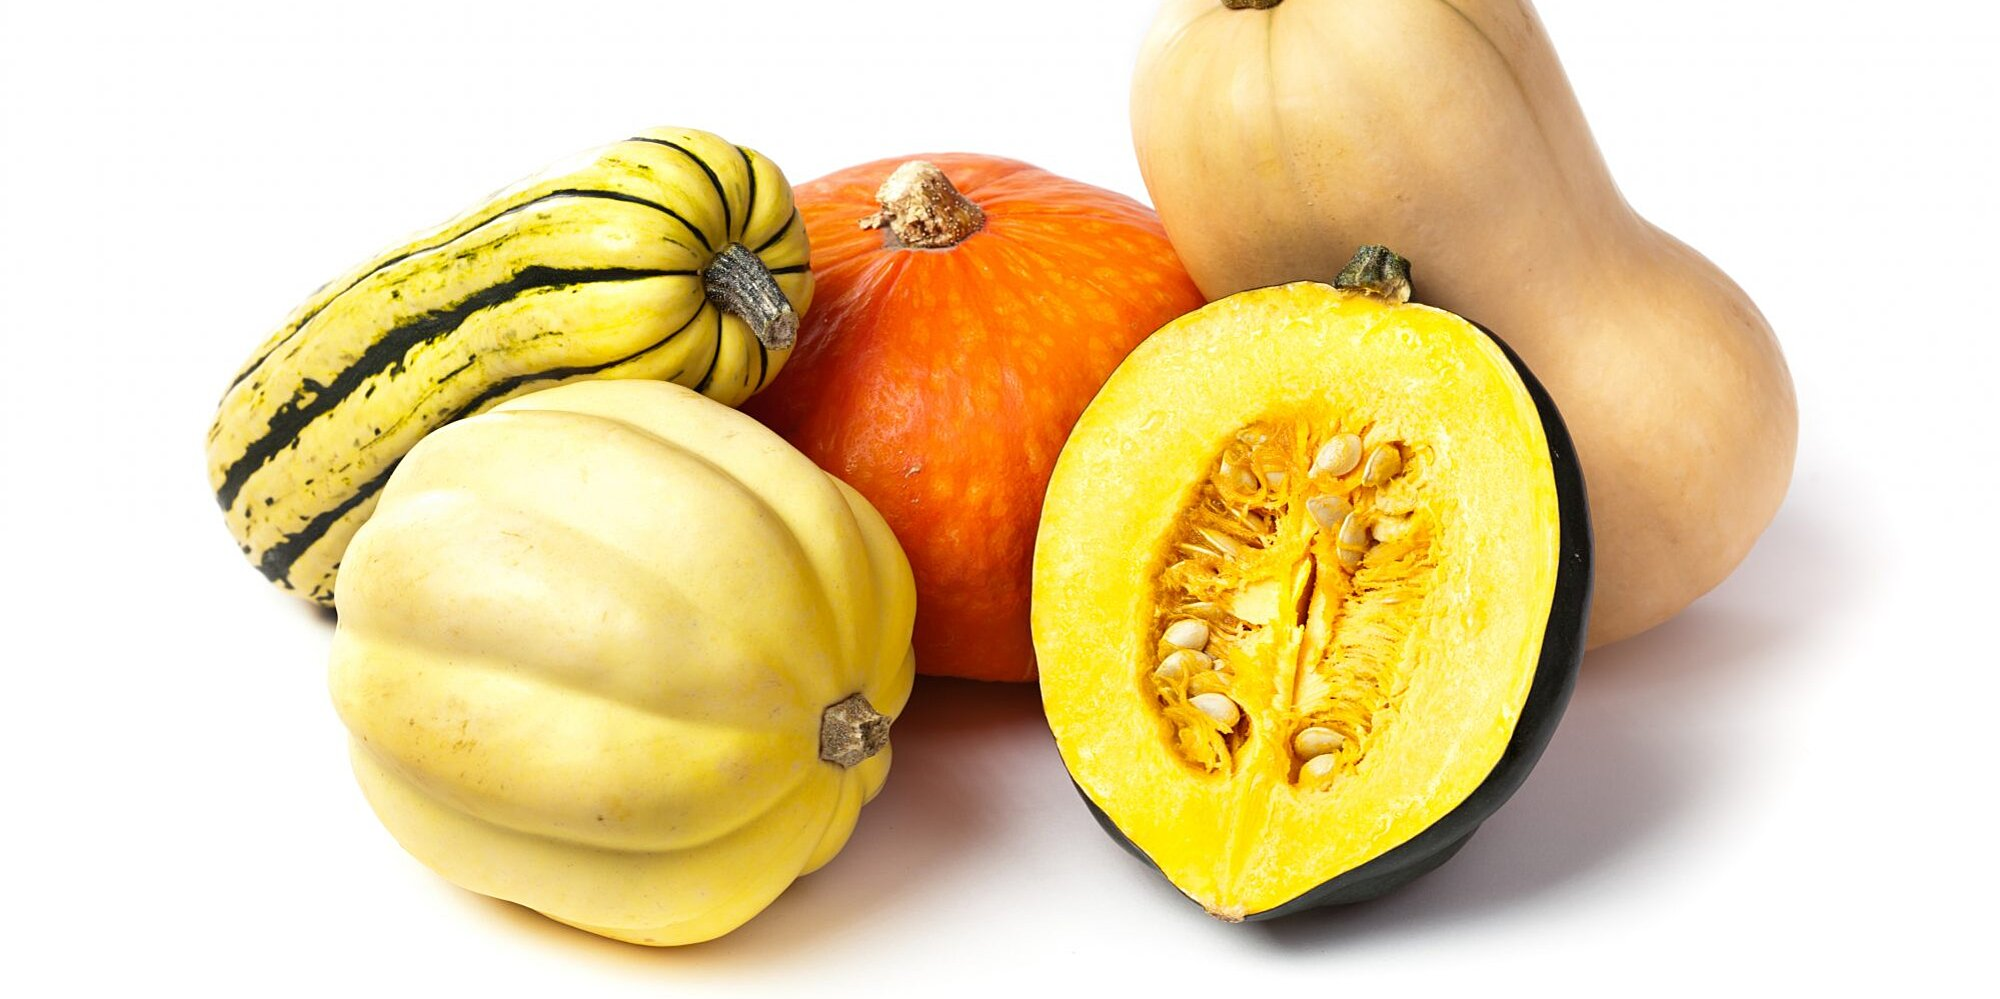 16 common types of squash mdash and the best ways to use them